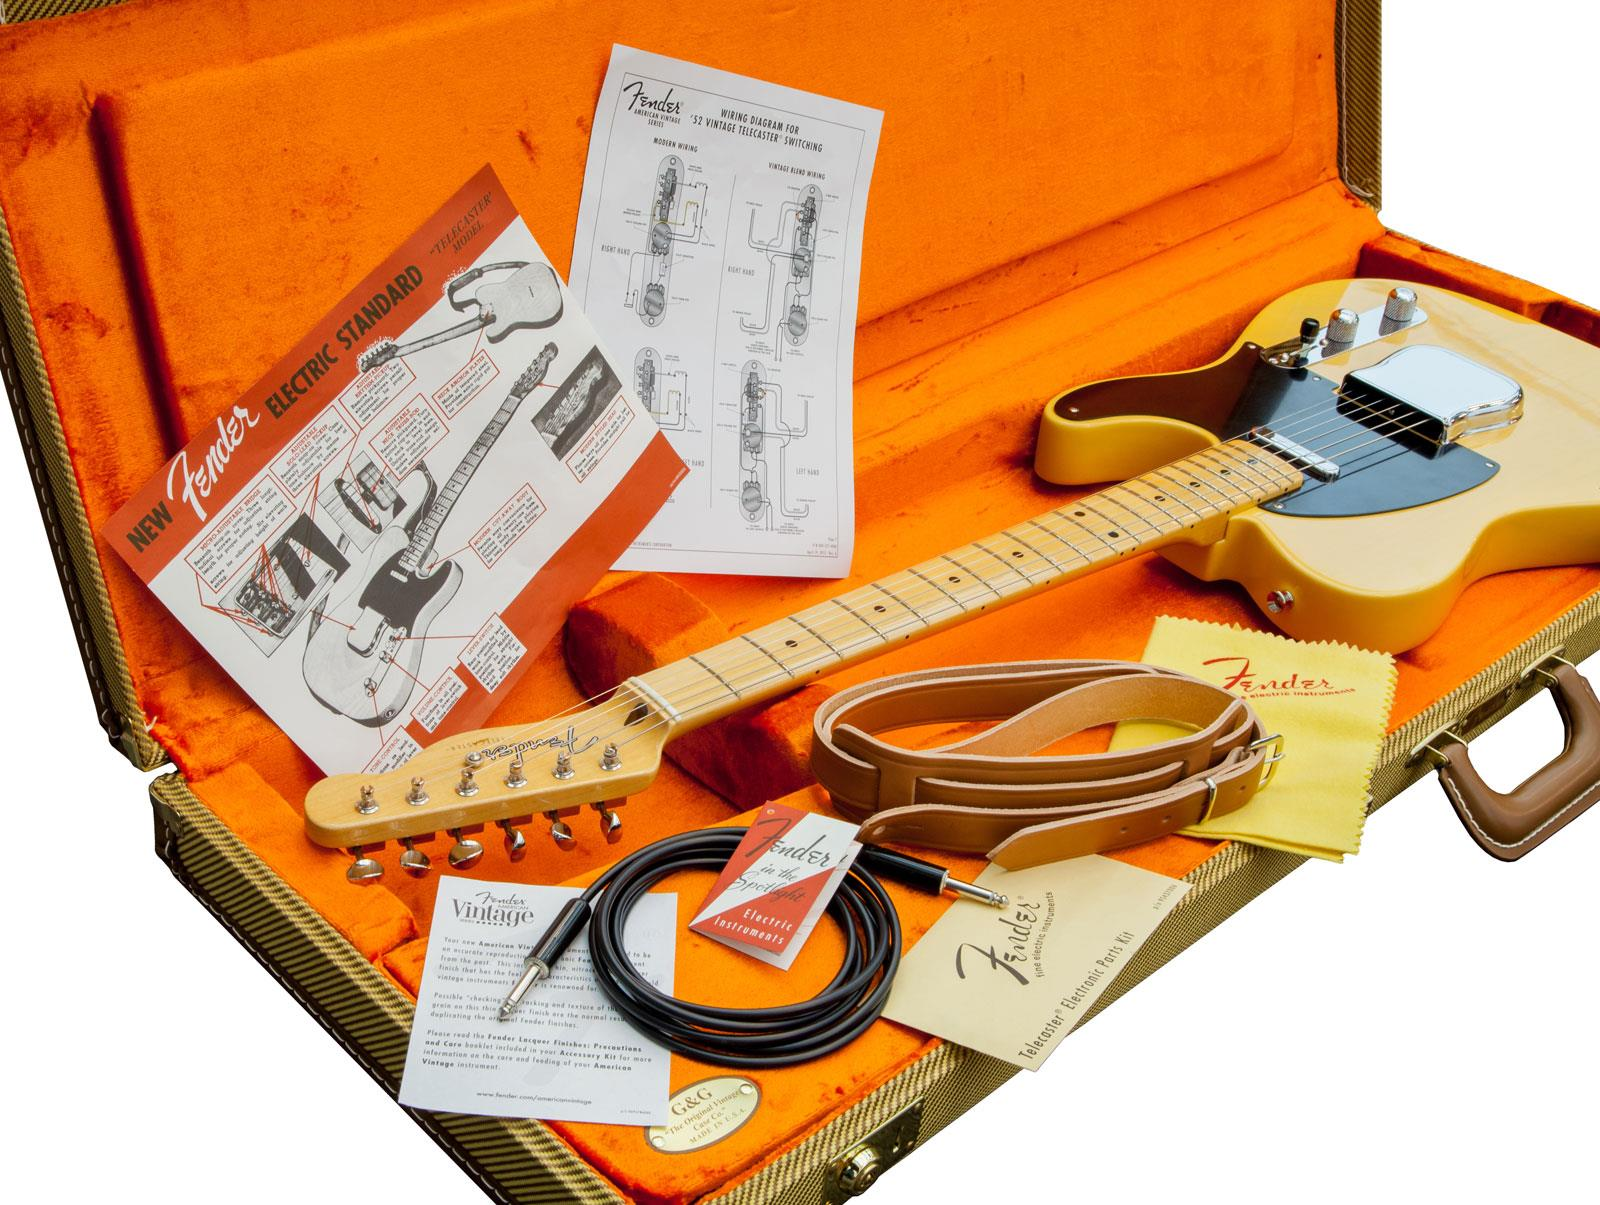 52 reissue telecaster wiring diagram - wiring diagram g8 on gibson wiring  diagram, esquire wiring